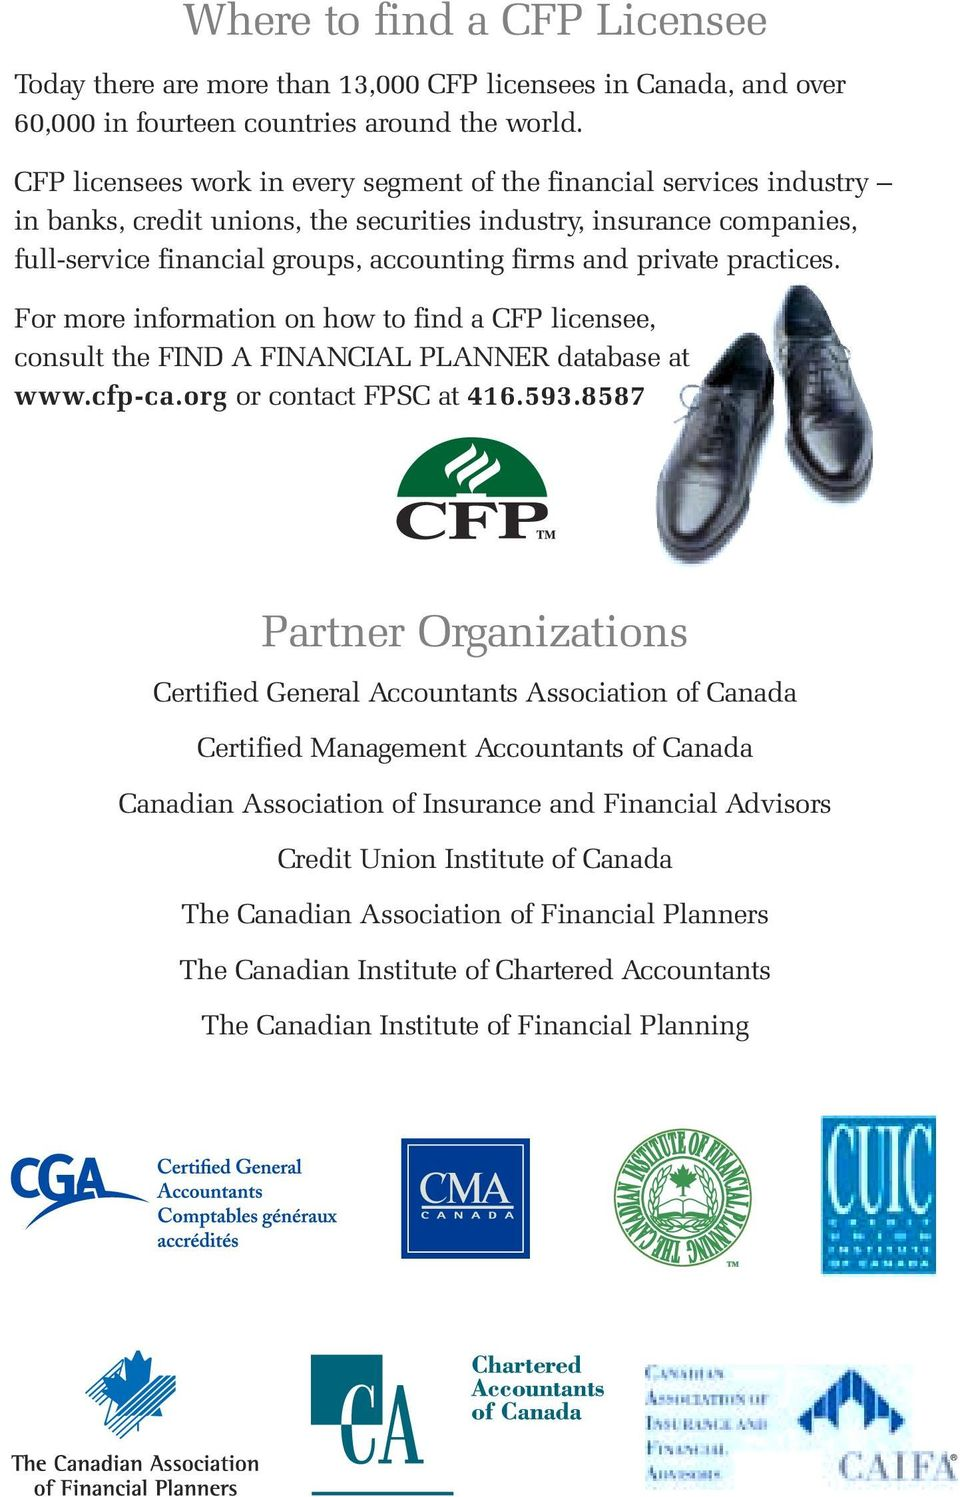 private practices. For more information on how to find a CFP licensee, consult the FIND A FINANCIAL PLANNER database at www.cfp-ca.org or contact FPSC at 416.593.